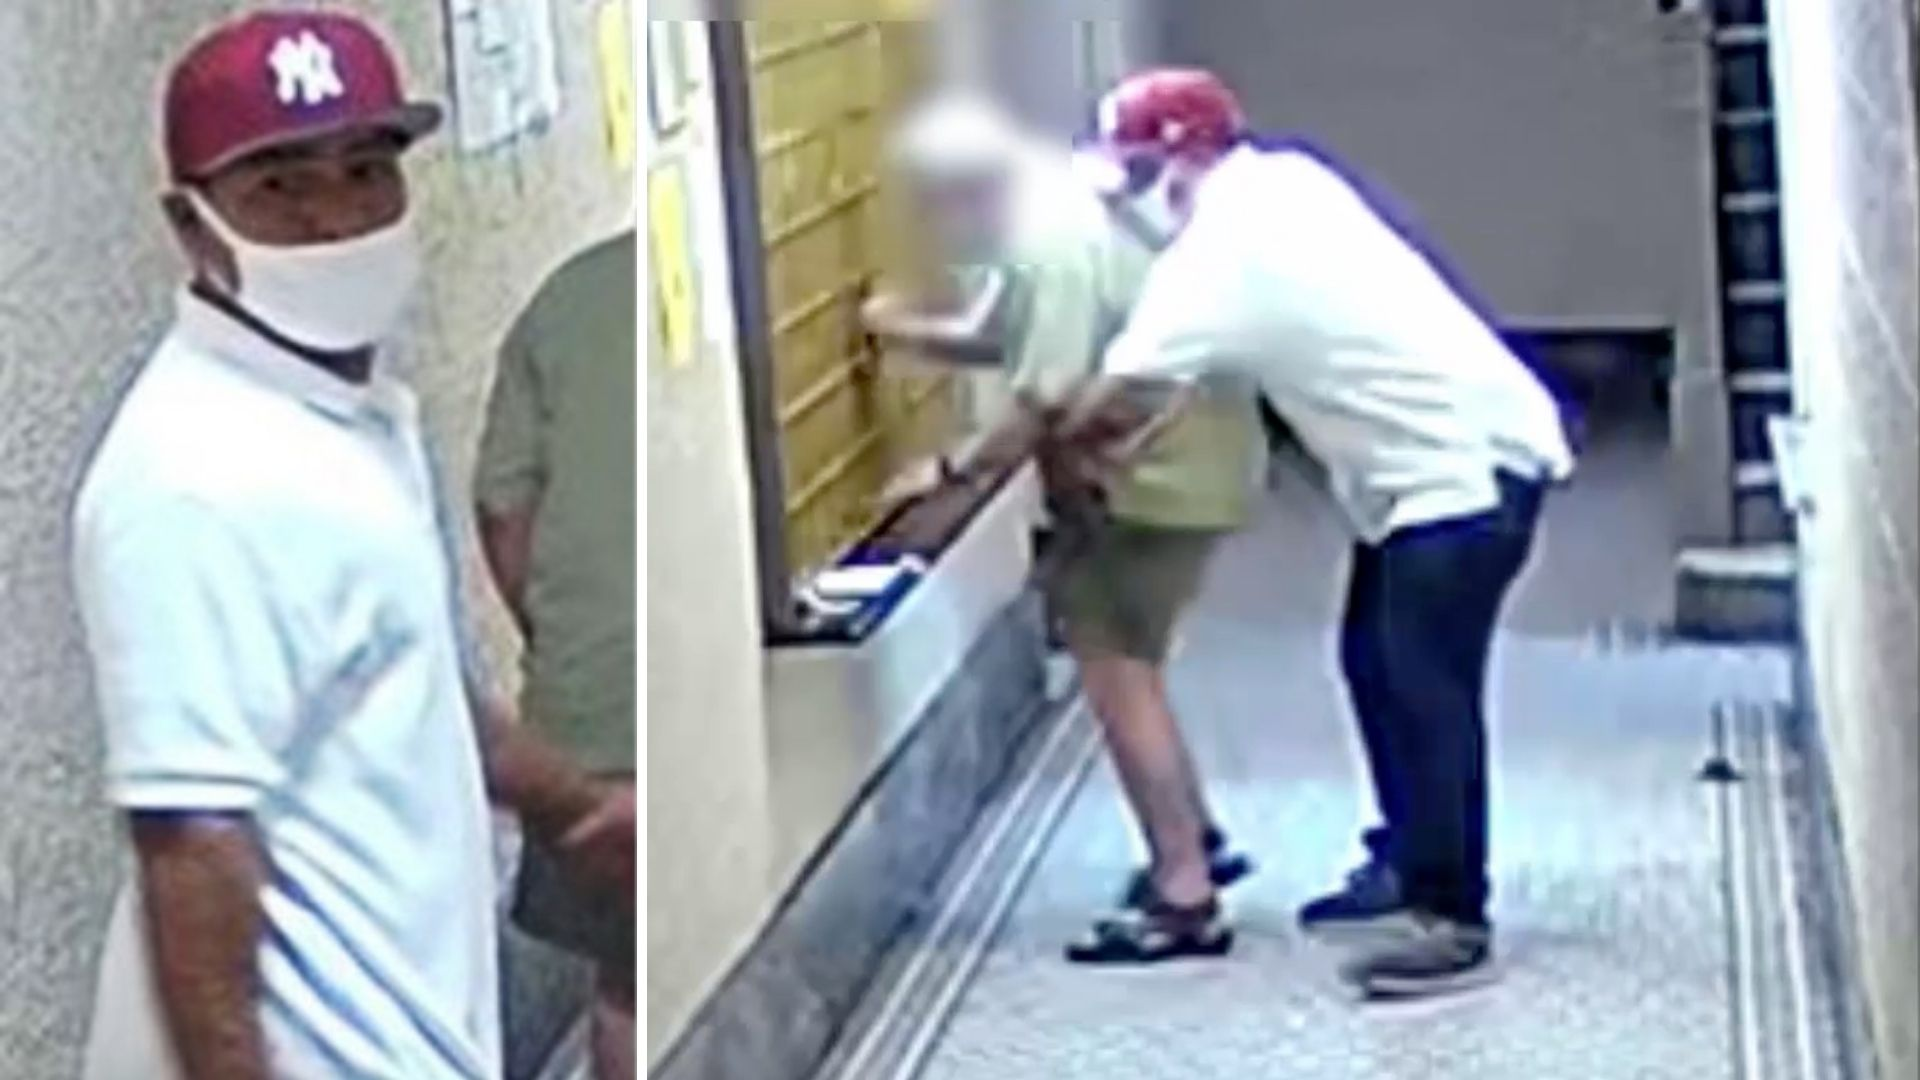 Bronx seniors targeted in string of violent robberies